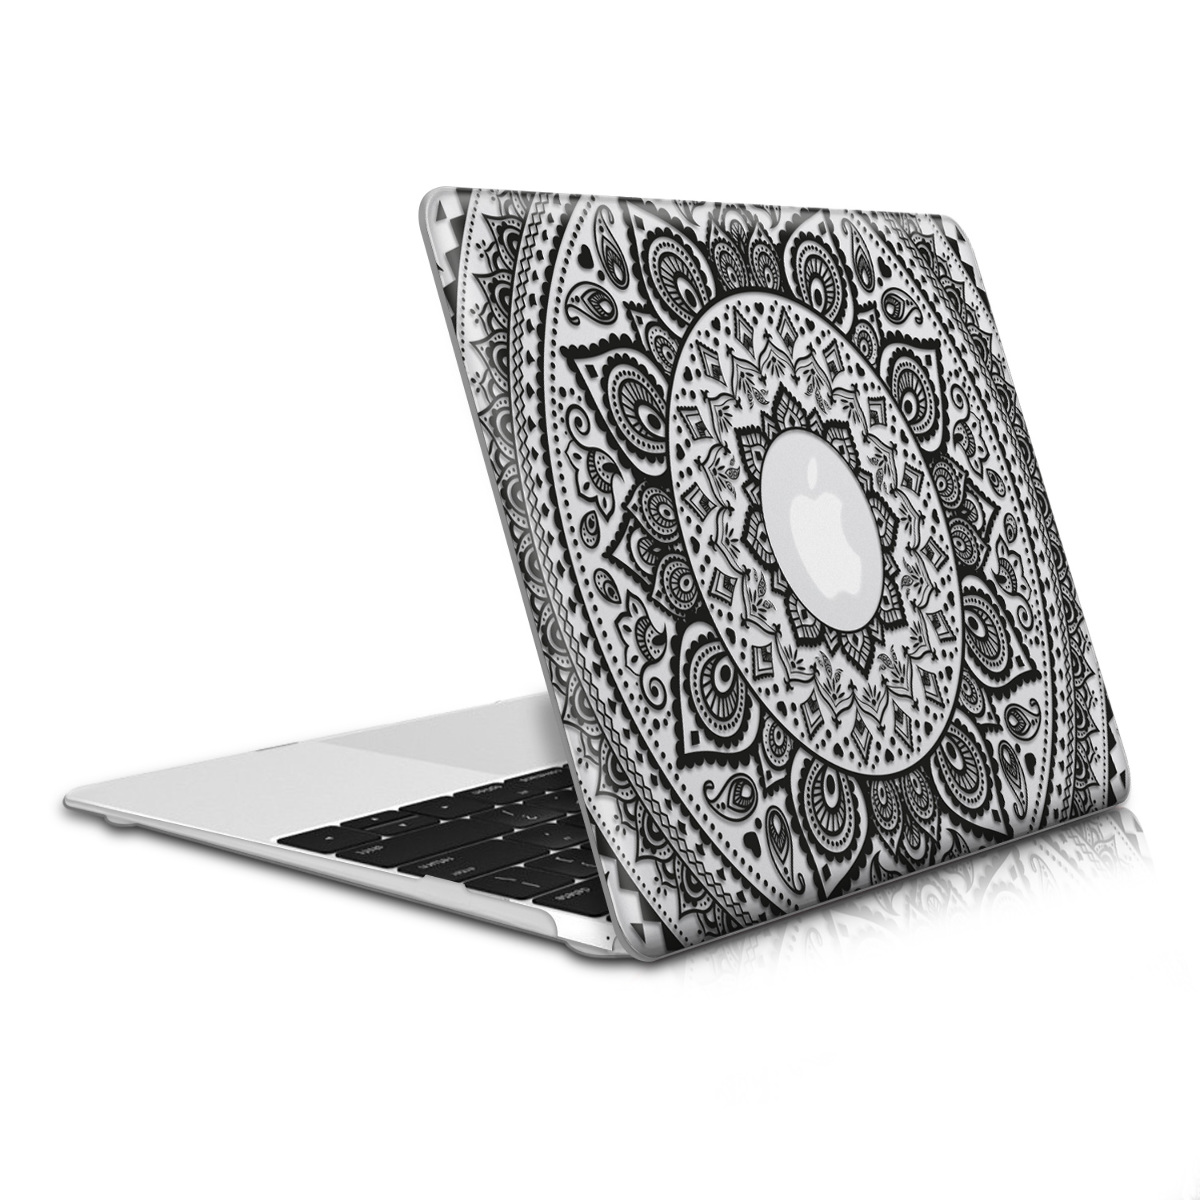 kwmobile-FUNDA-TRANSPARENTE-PARA-APPLE-MACBOOK-12-034-A-PARTIR-DE-2015-FUNDA